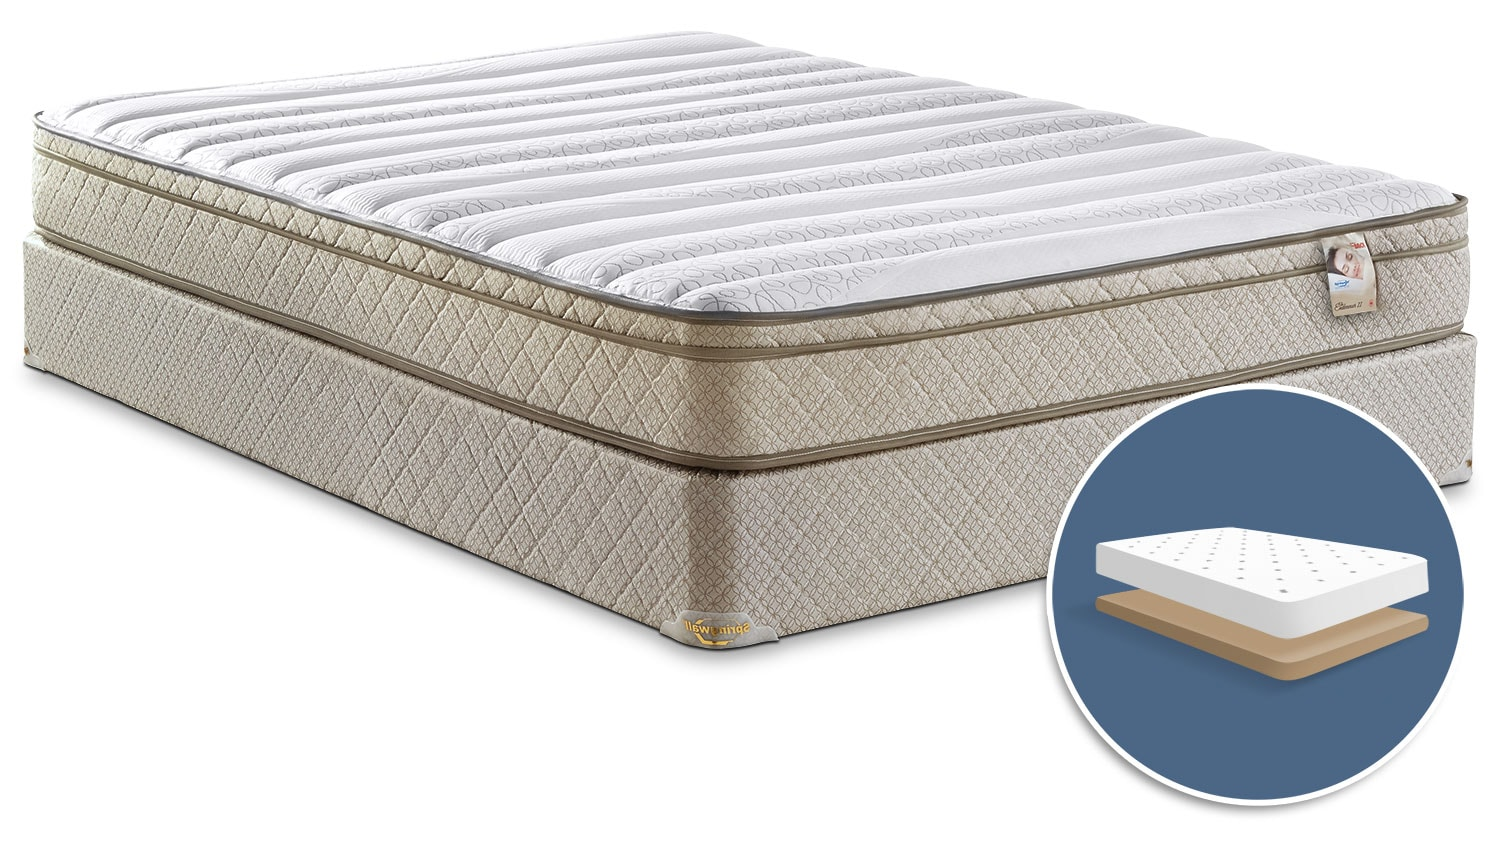 Mattresses and Bedding - Springwall Endeavour 2 Euro-Top Firm Queen Mattress and Low-Profile Boxspring Set